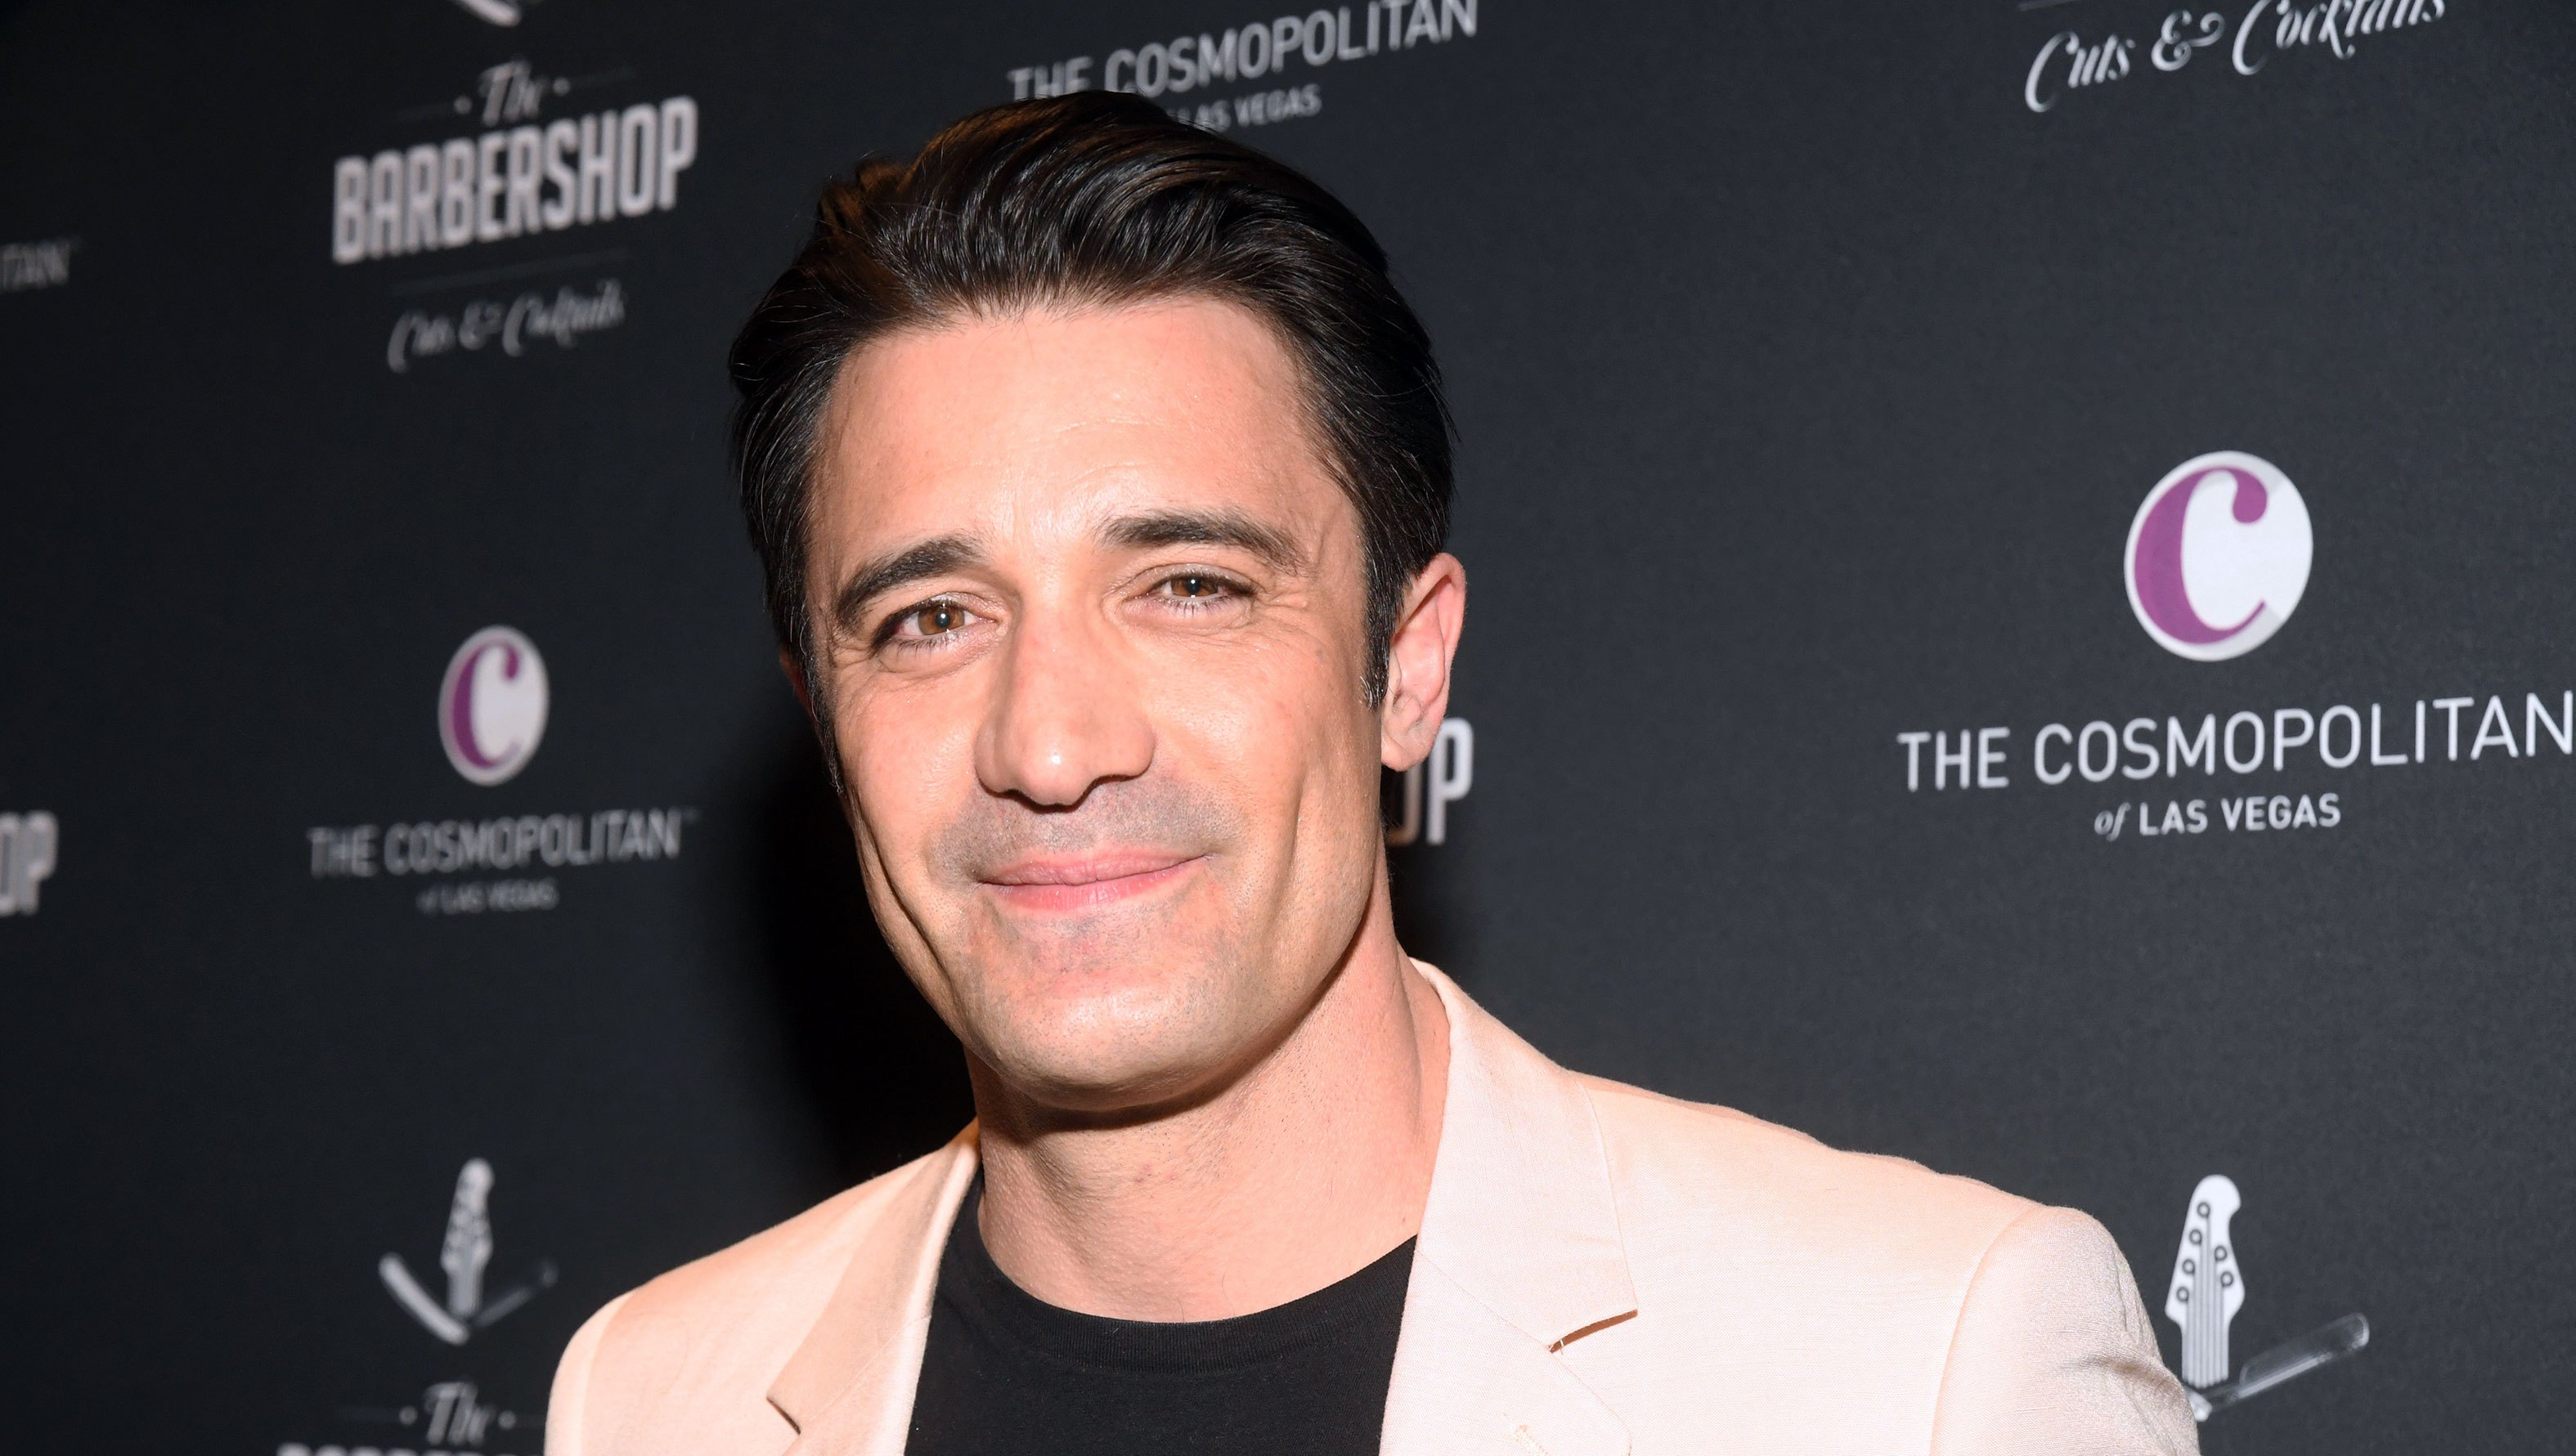 Gilles Marini Says He's 'Not Going to Throw Any Rocks' at Lori Loughlin, Parents Amid College Bribe Scam